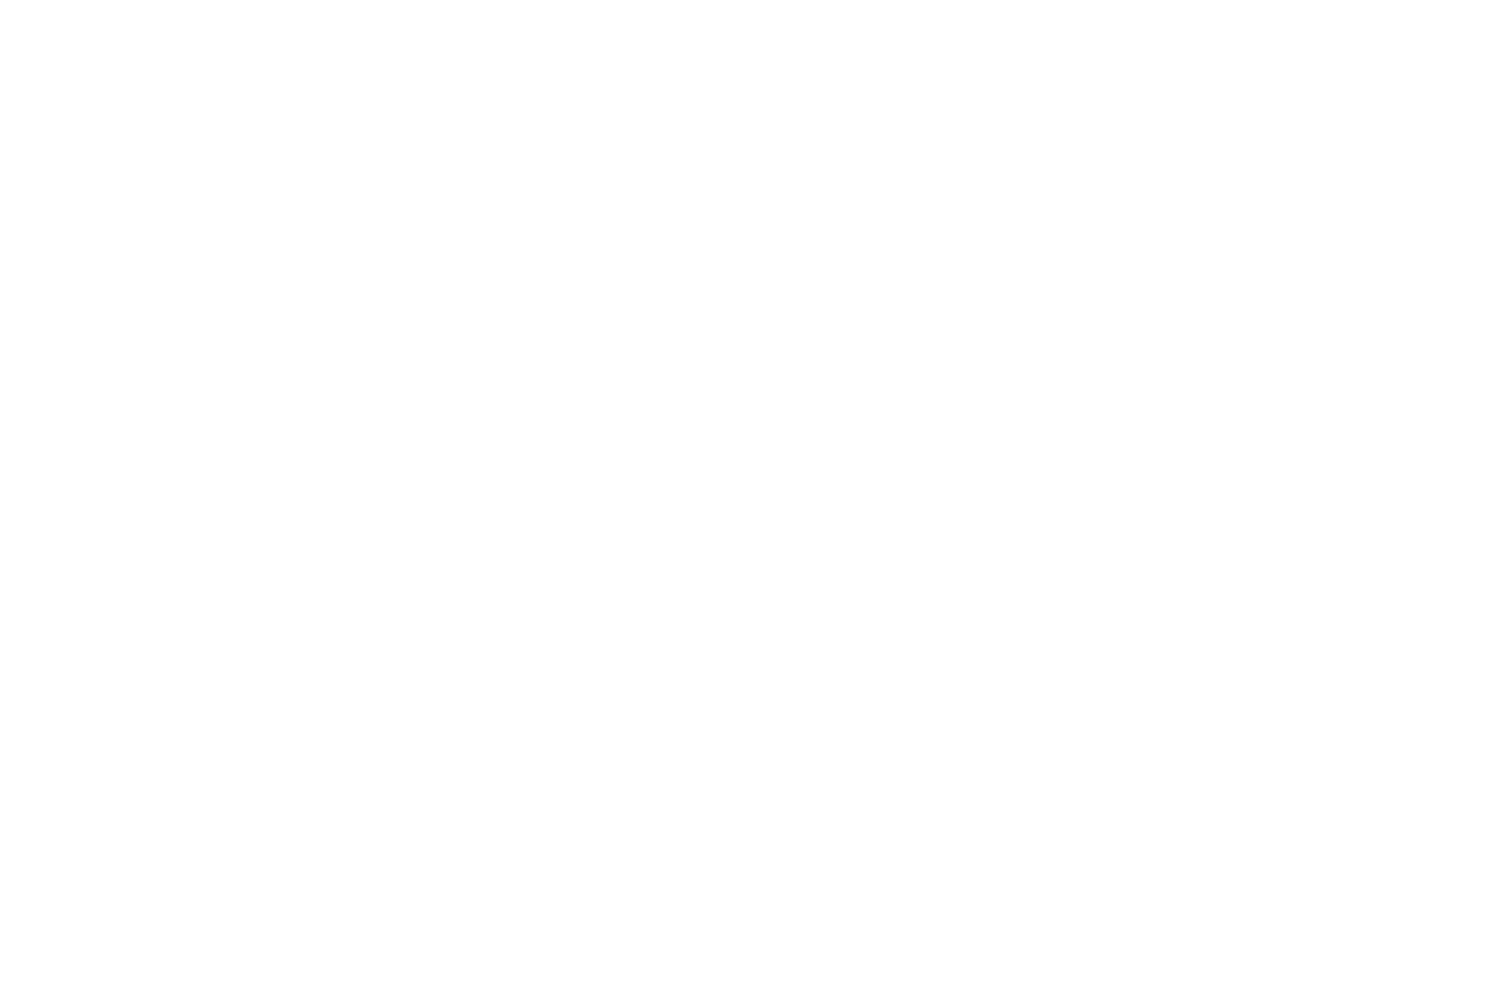 D.Herring Photogrphy